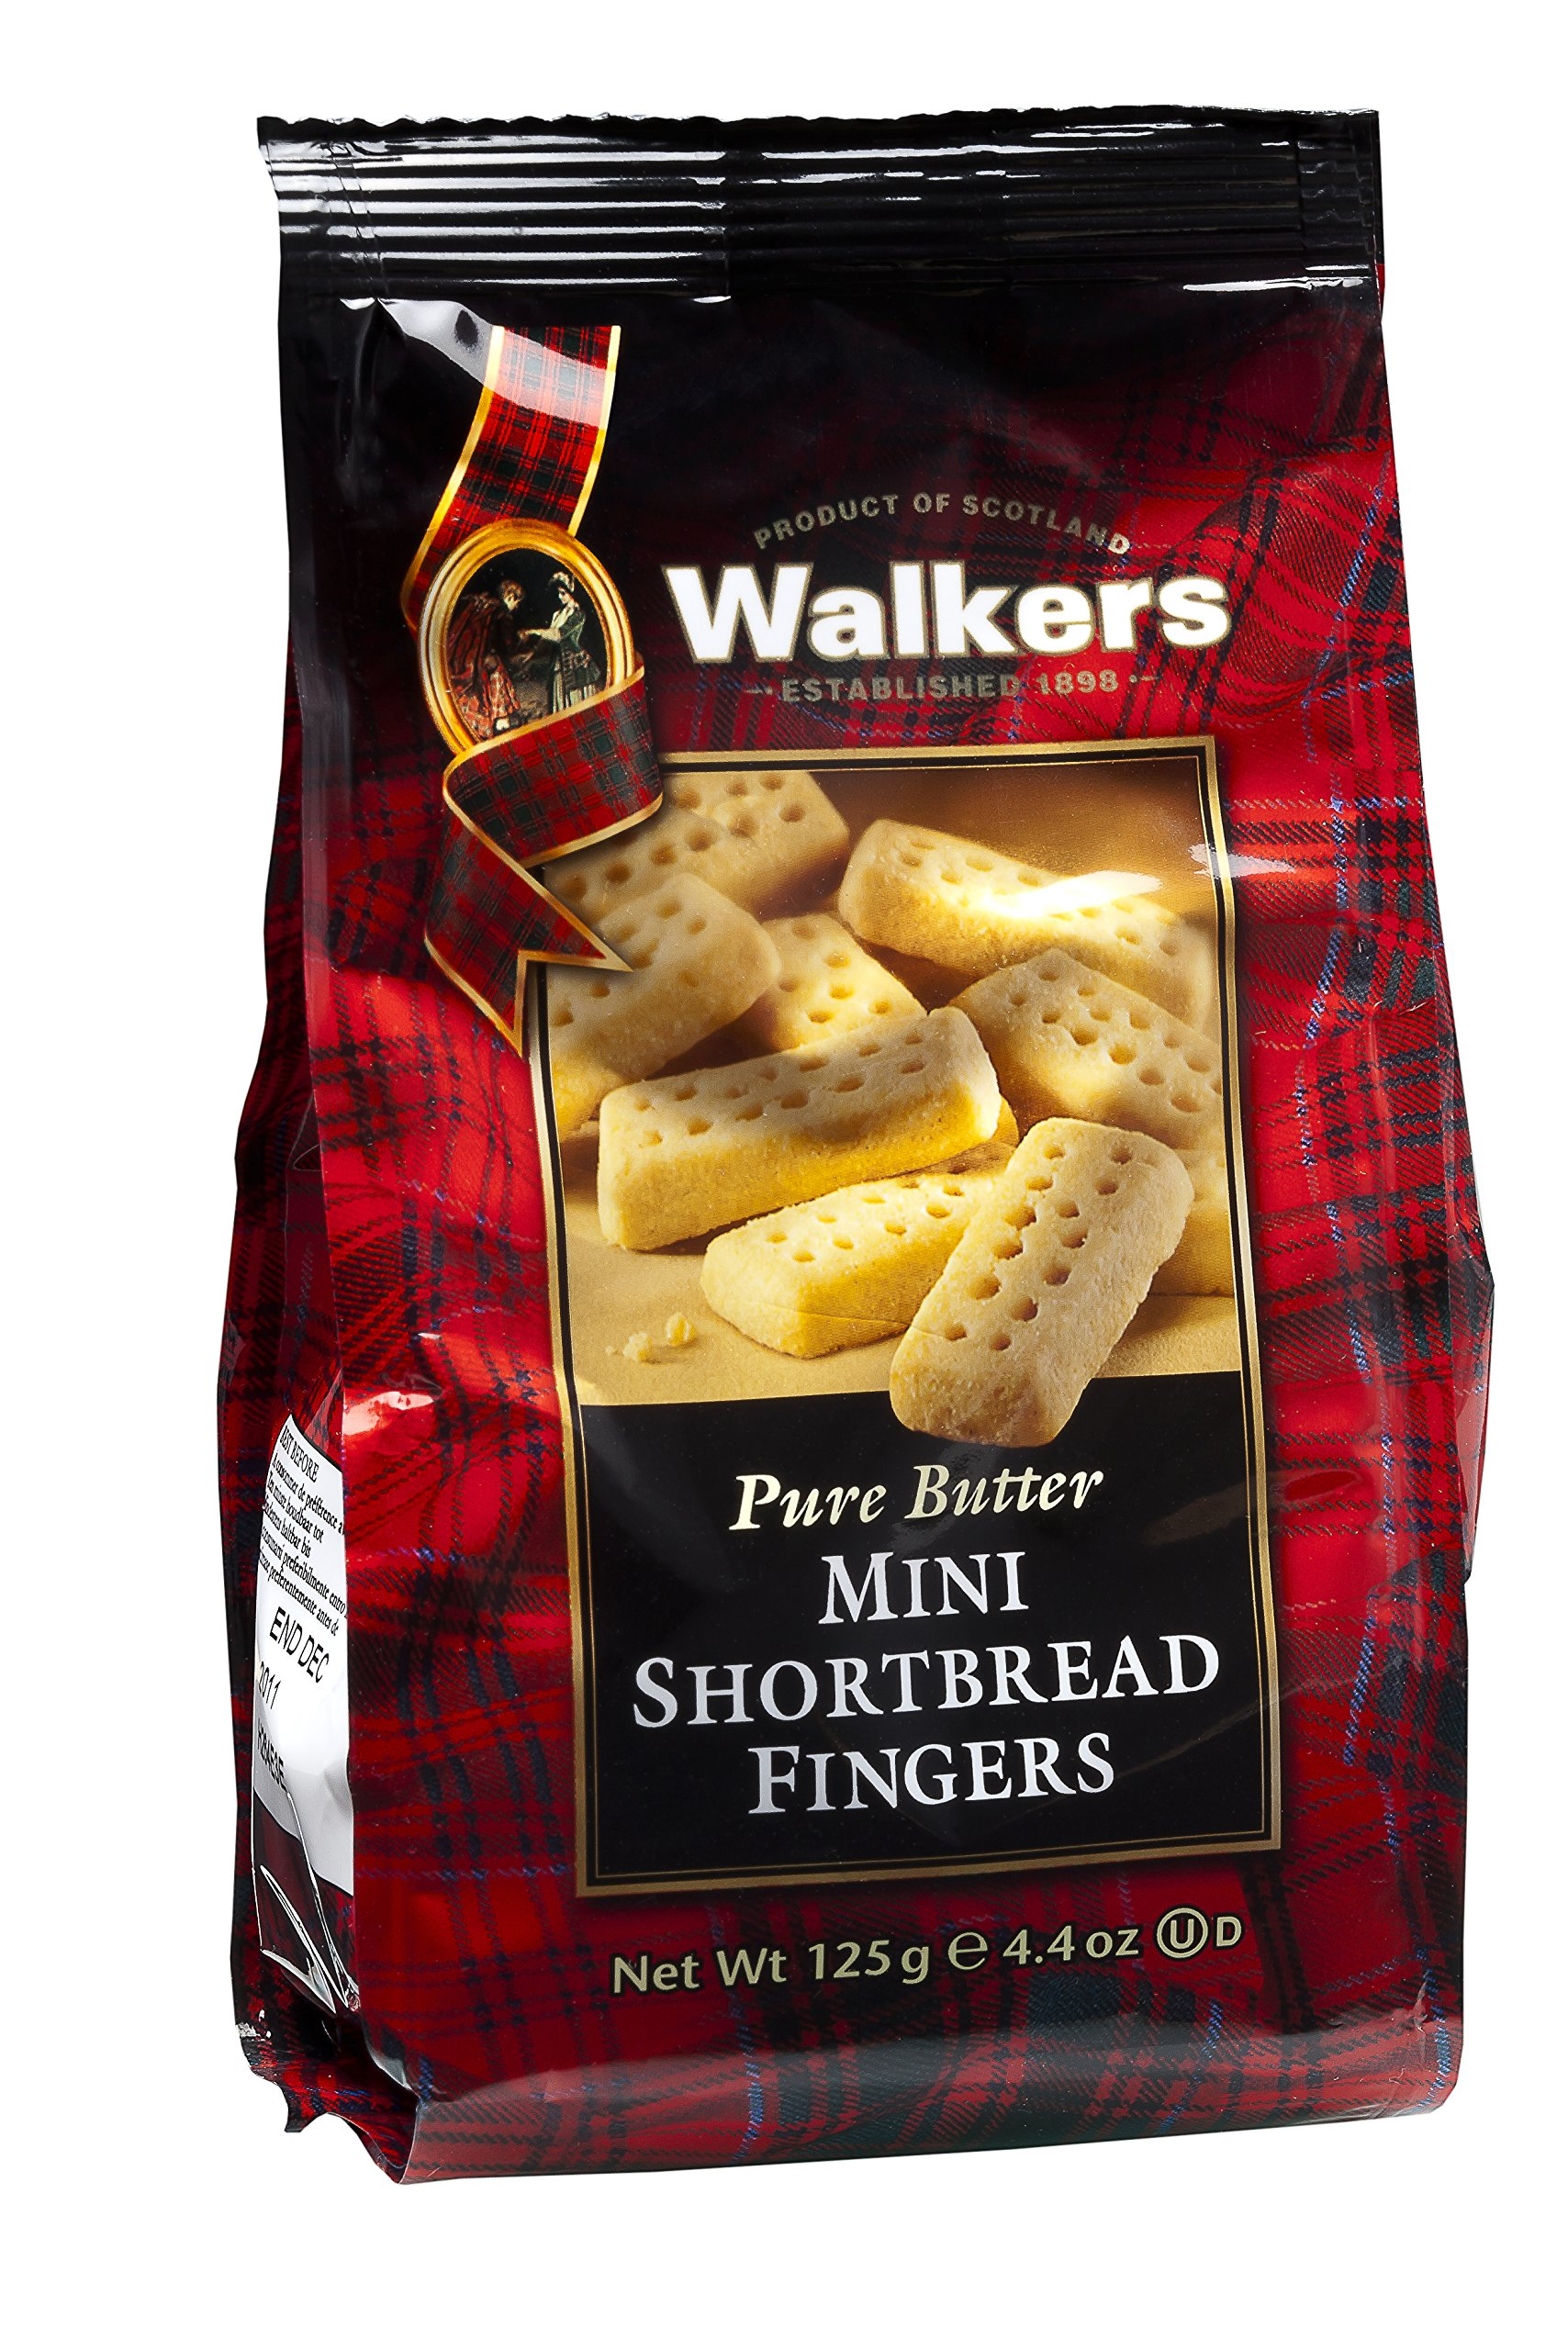 Walkers Shortbread Mini Fingers, Traditional Pure Butter Shortbread Cookies, 4.4-Ounce (Pack of 6) by Walkers Shortbread